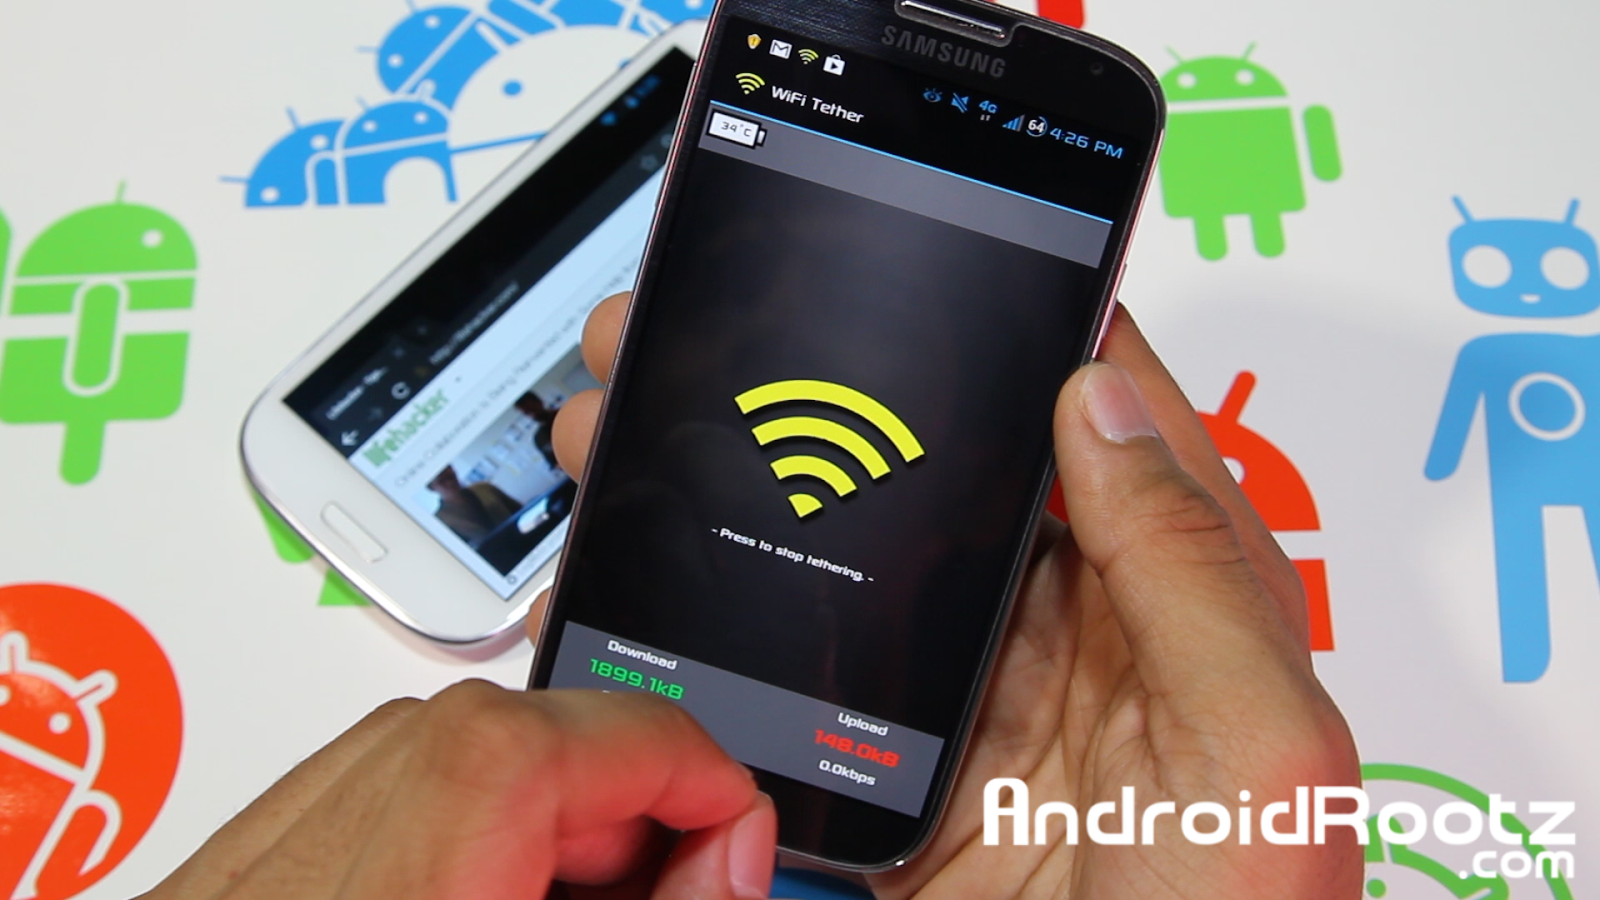 How to Get Free WiFi Tethering/Hotspot on T-Mobile Galaxy S4